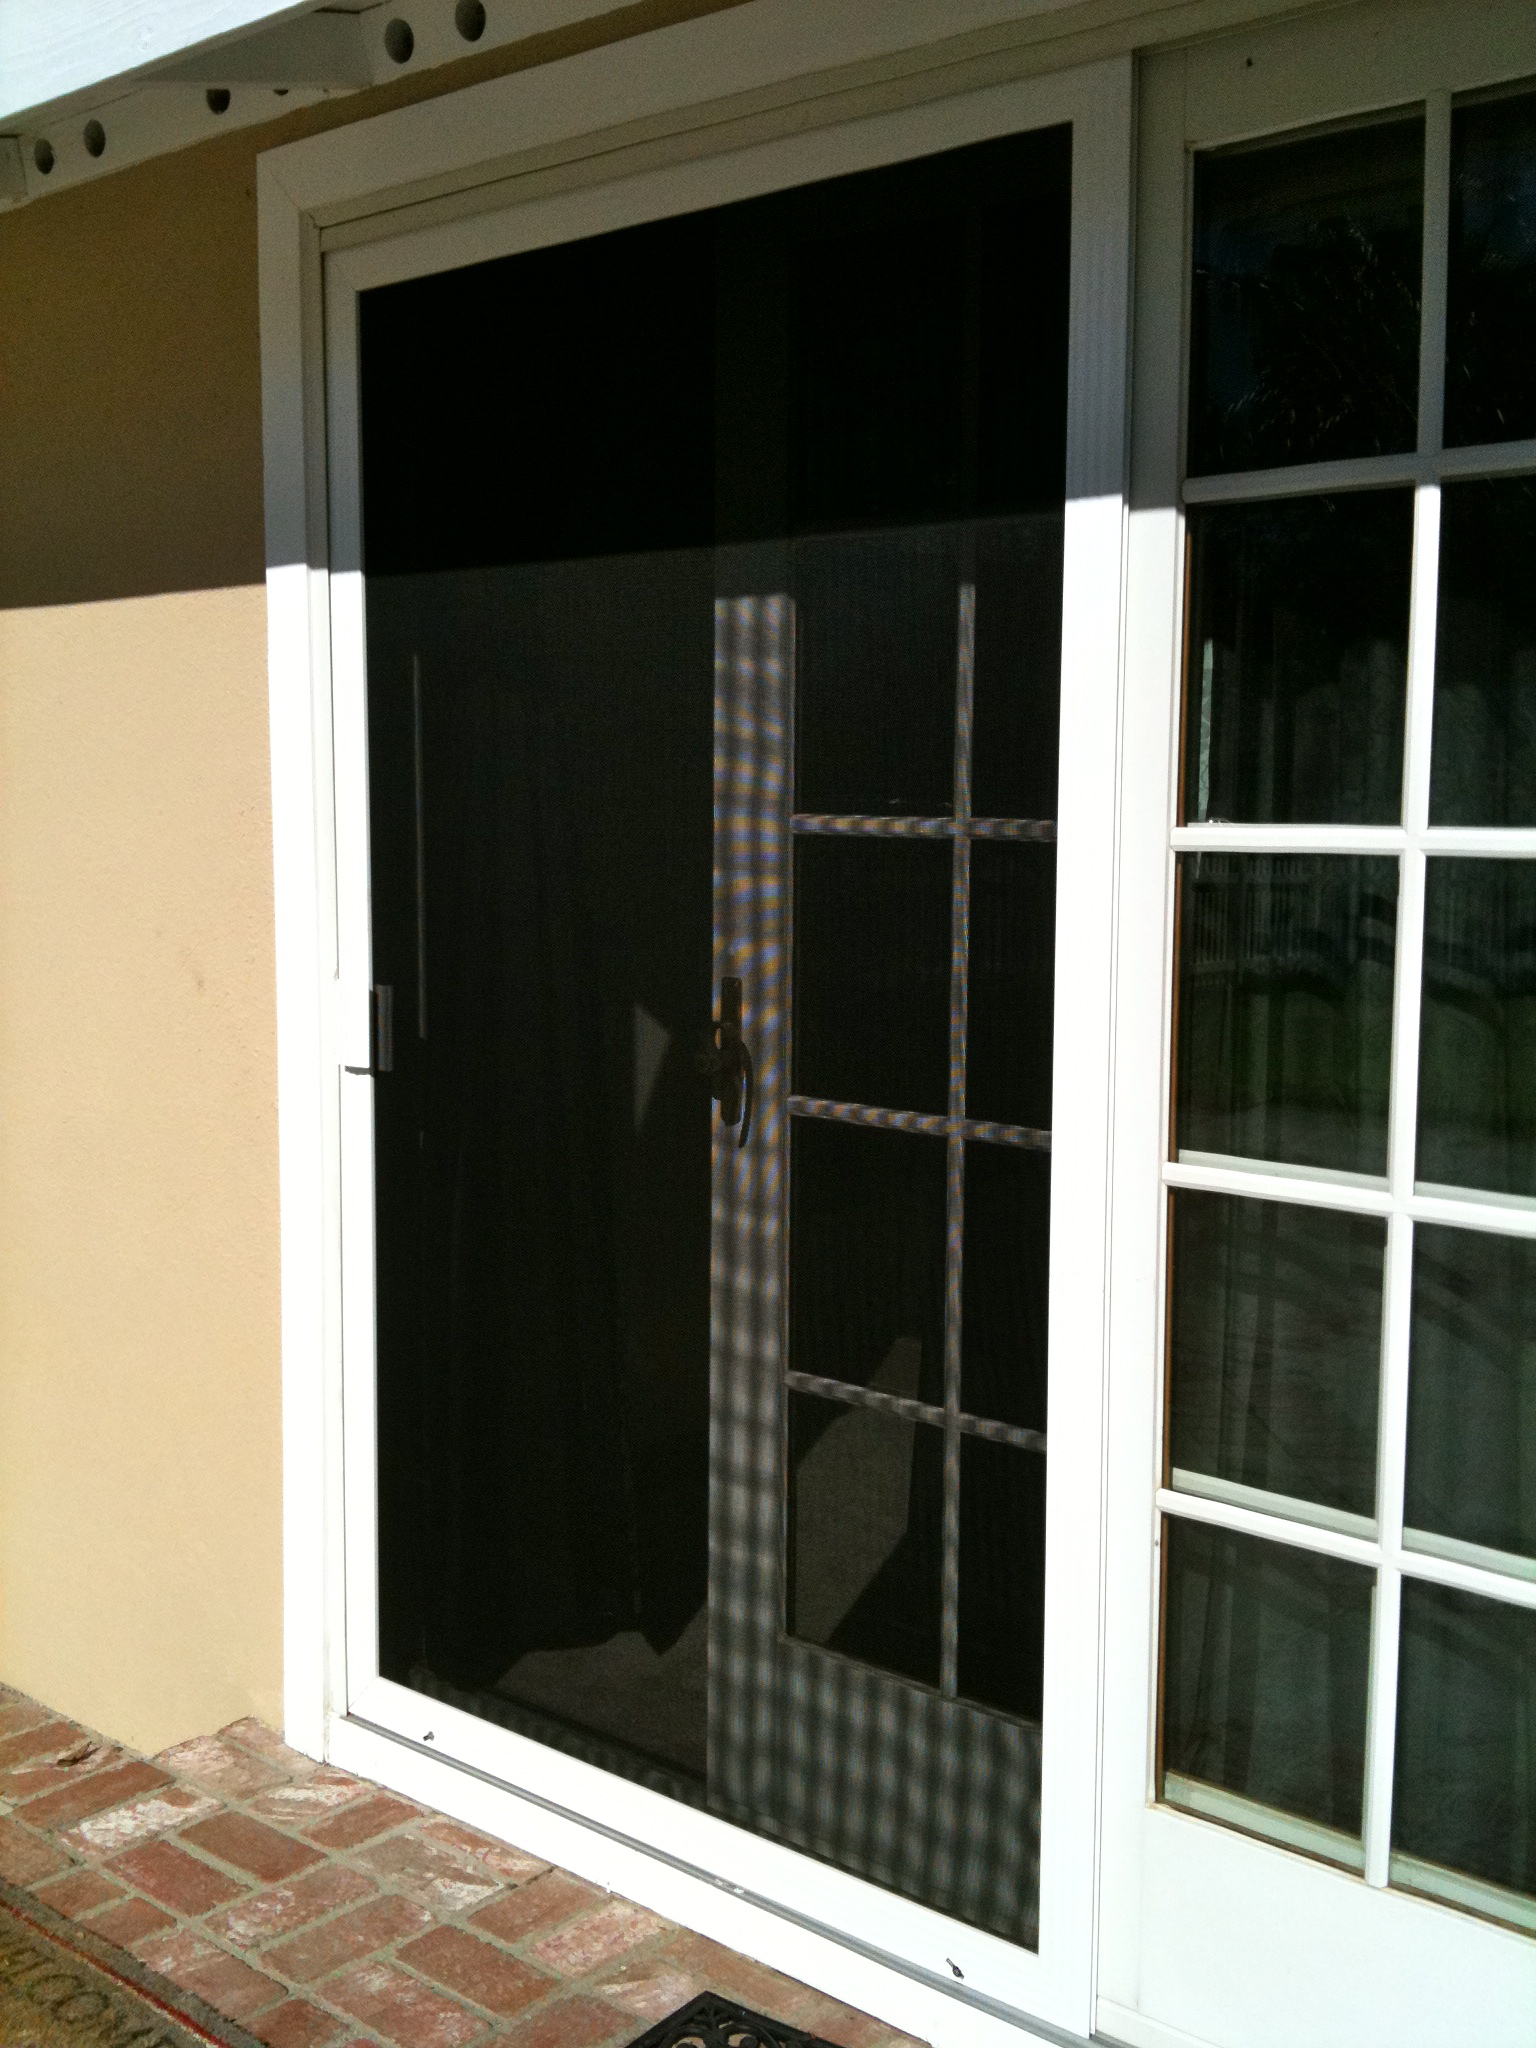 Replacement window screens fabulous camarillo window for Door window replacement